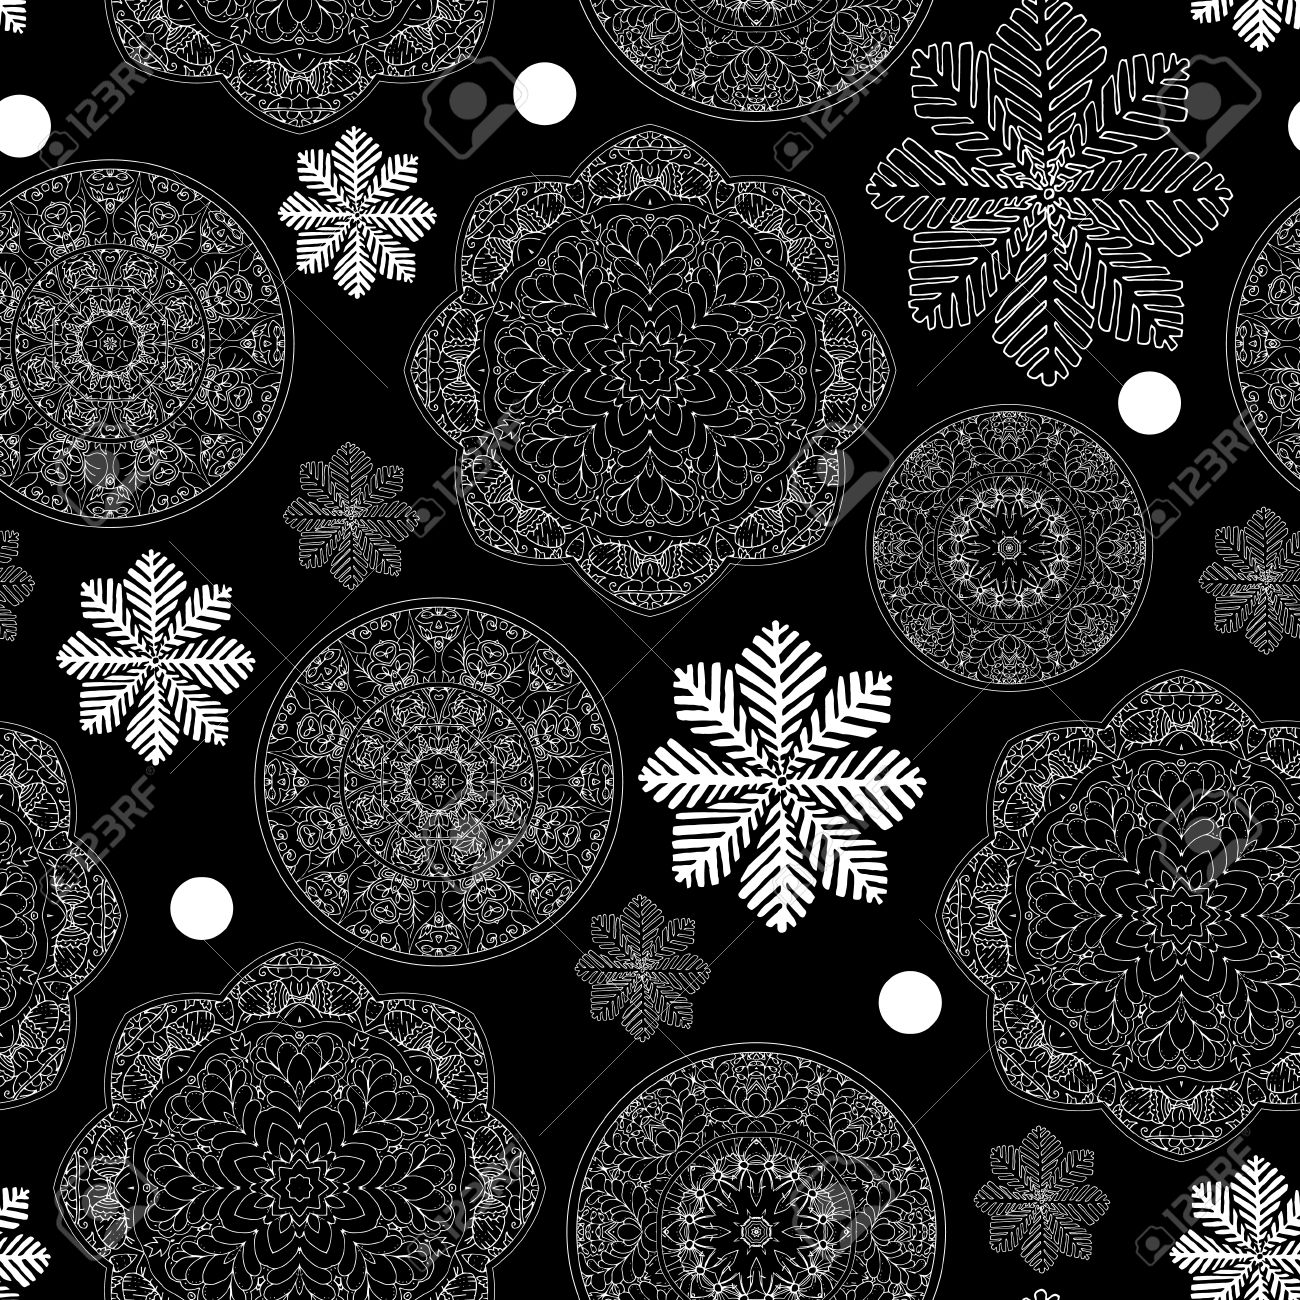 Rustic Winter Seamless Pattern For Scrapbook Paper Design Merry Christmas Printable Vector Illustration